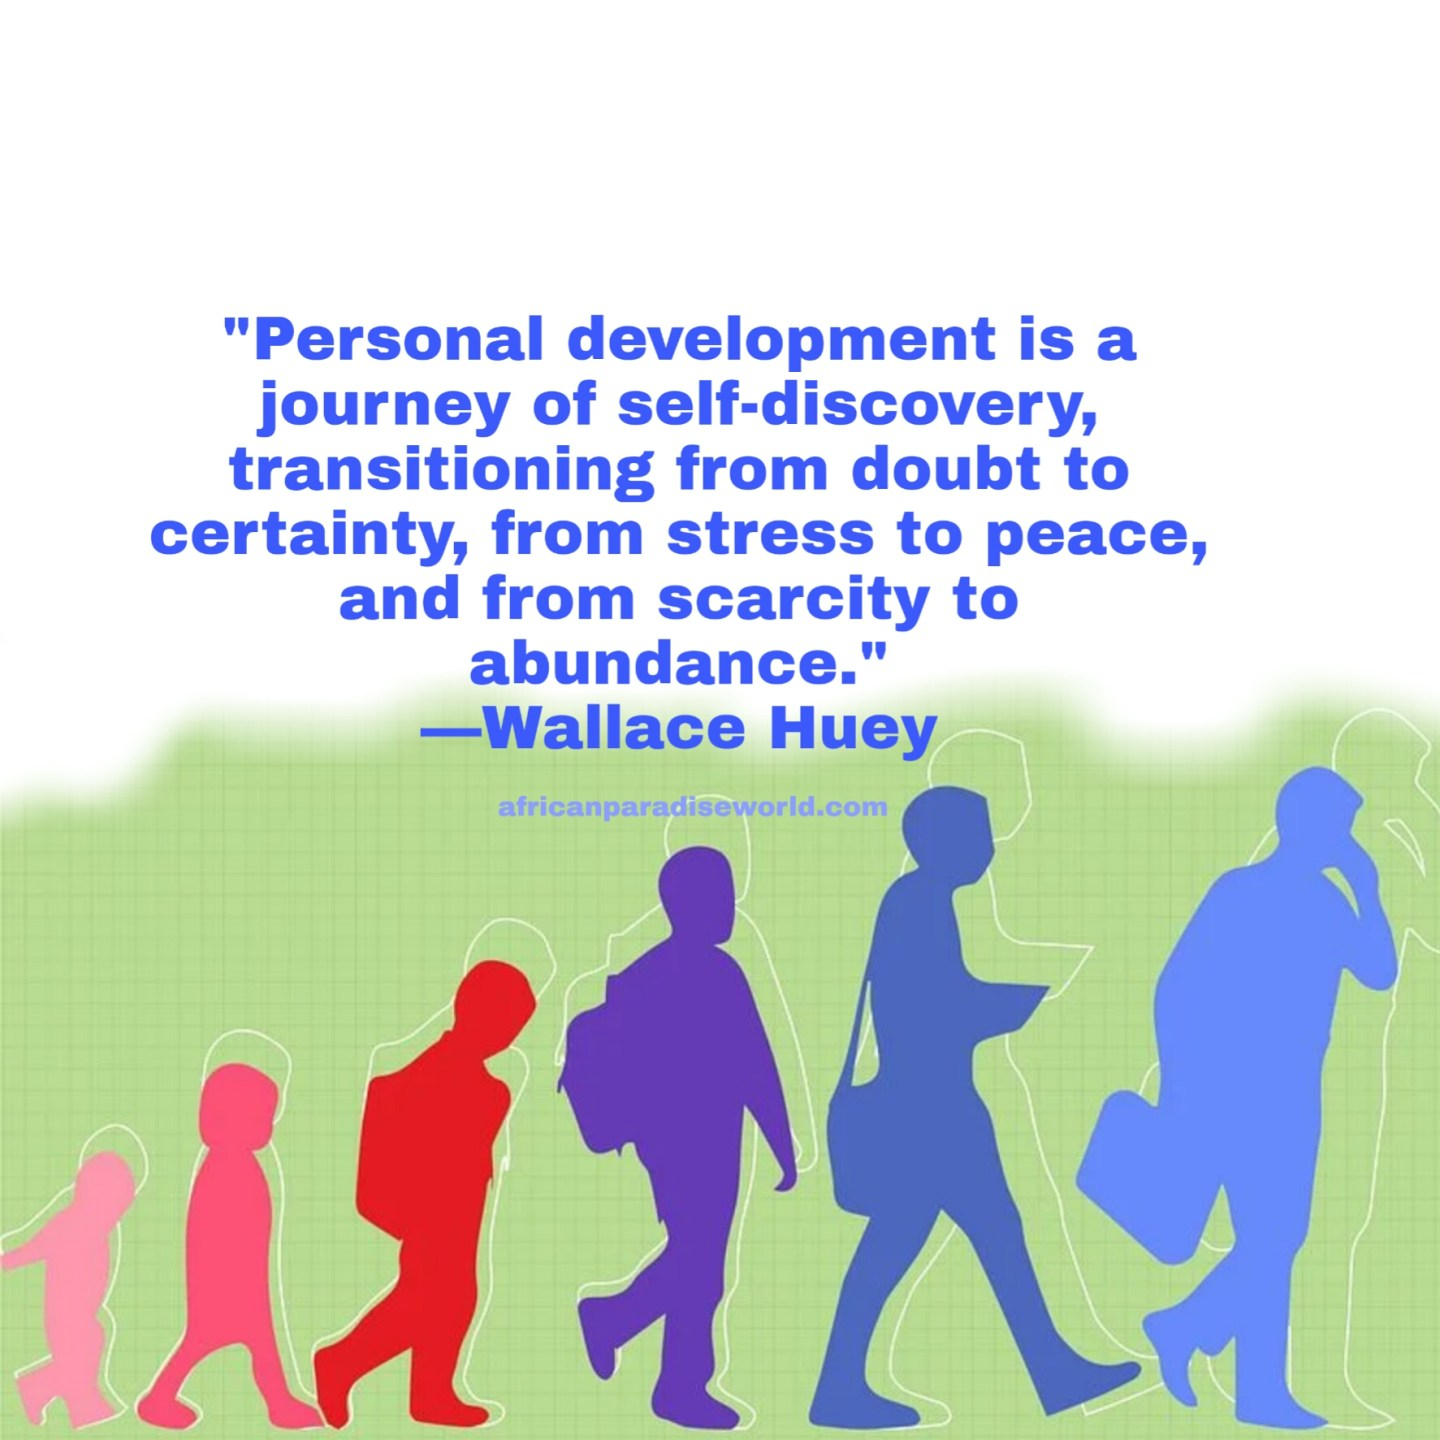 Personal growths quotes about self-discovery